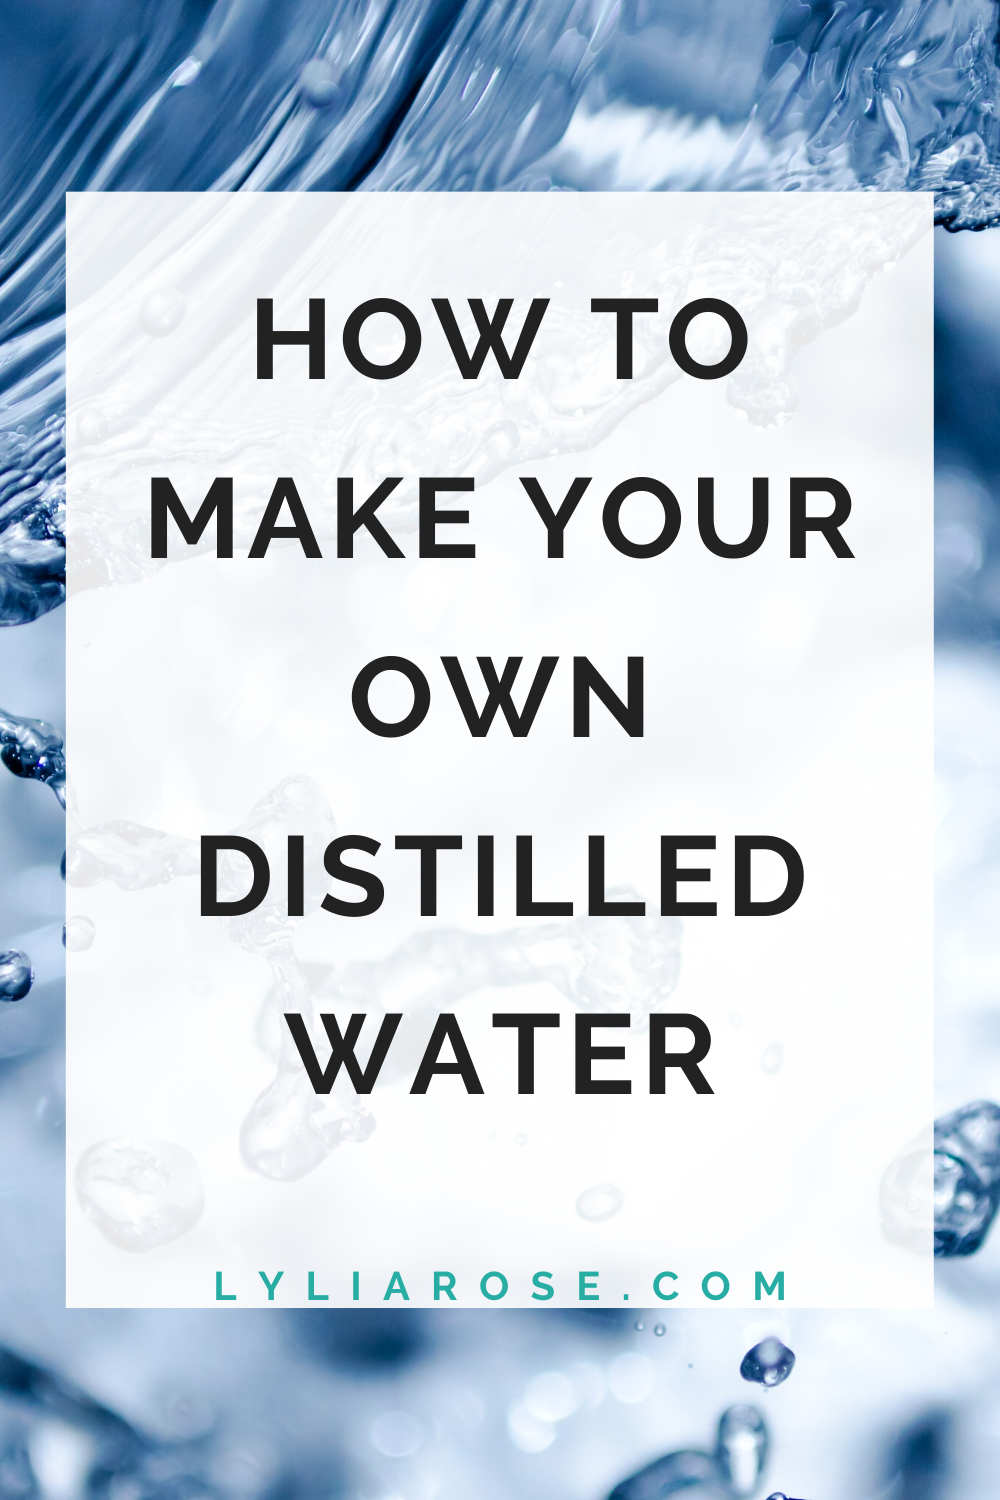 How to make your own distilled water